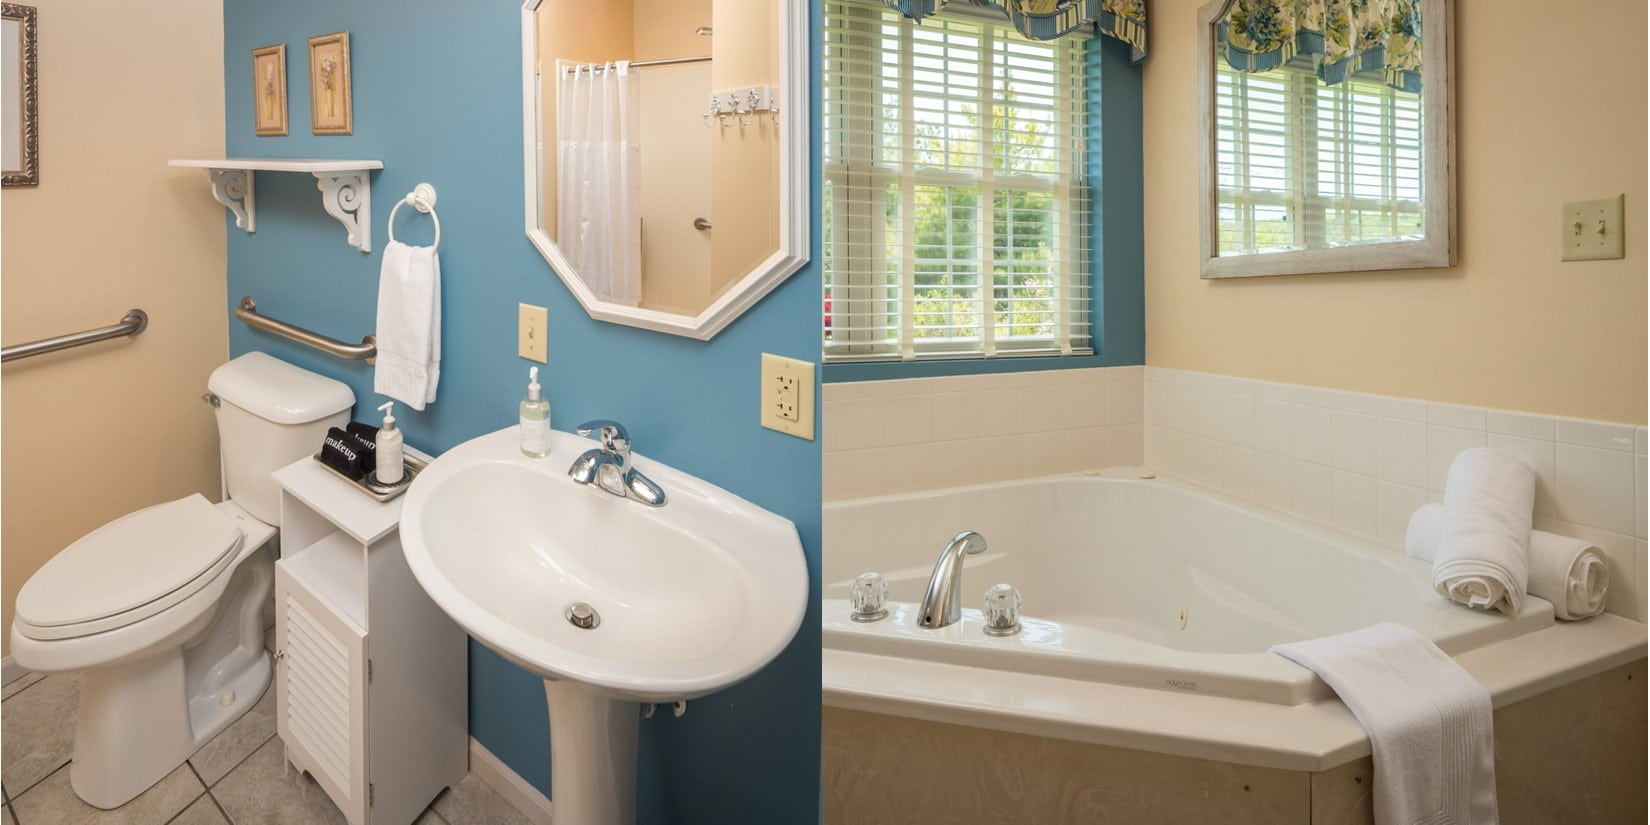 Split picture wth left showing toilet, sink and reflection of shower in mirror with blue Walls, Right picture shows whrilpool tub with window and mirror above